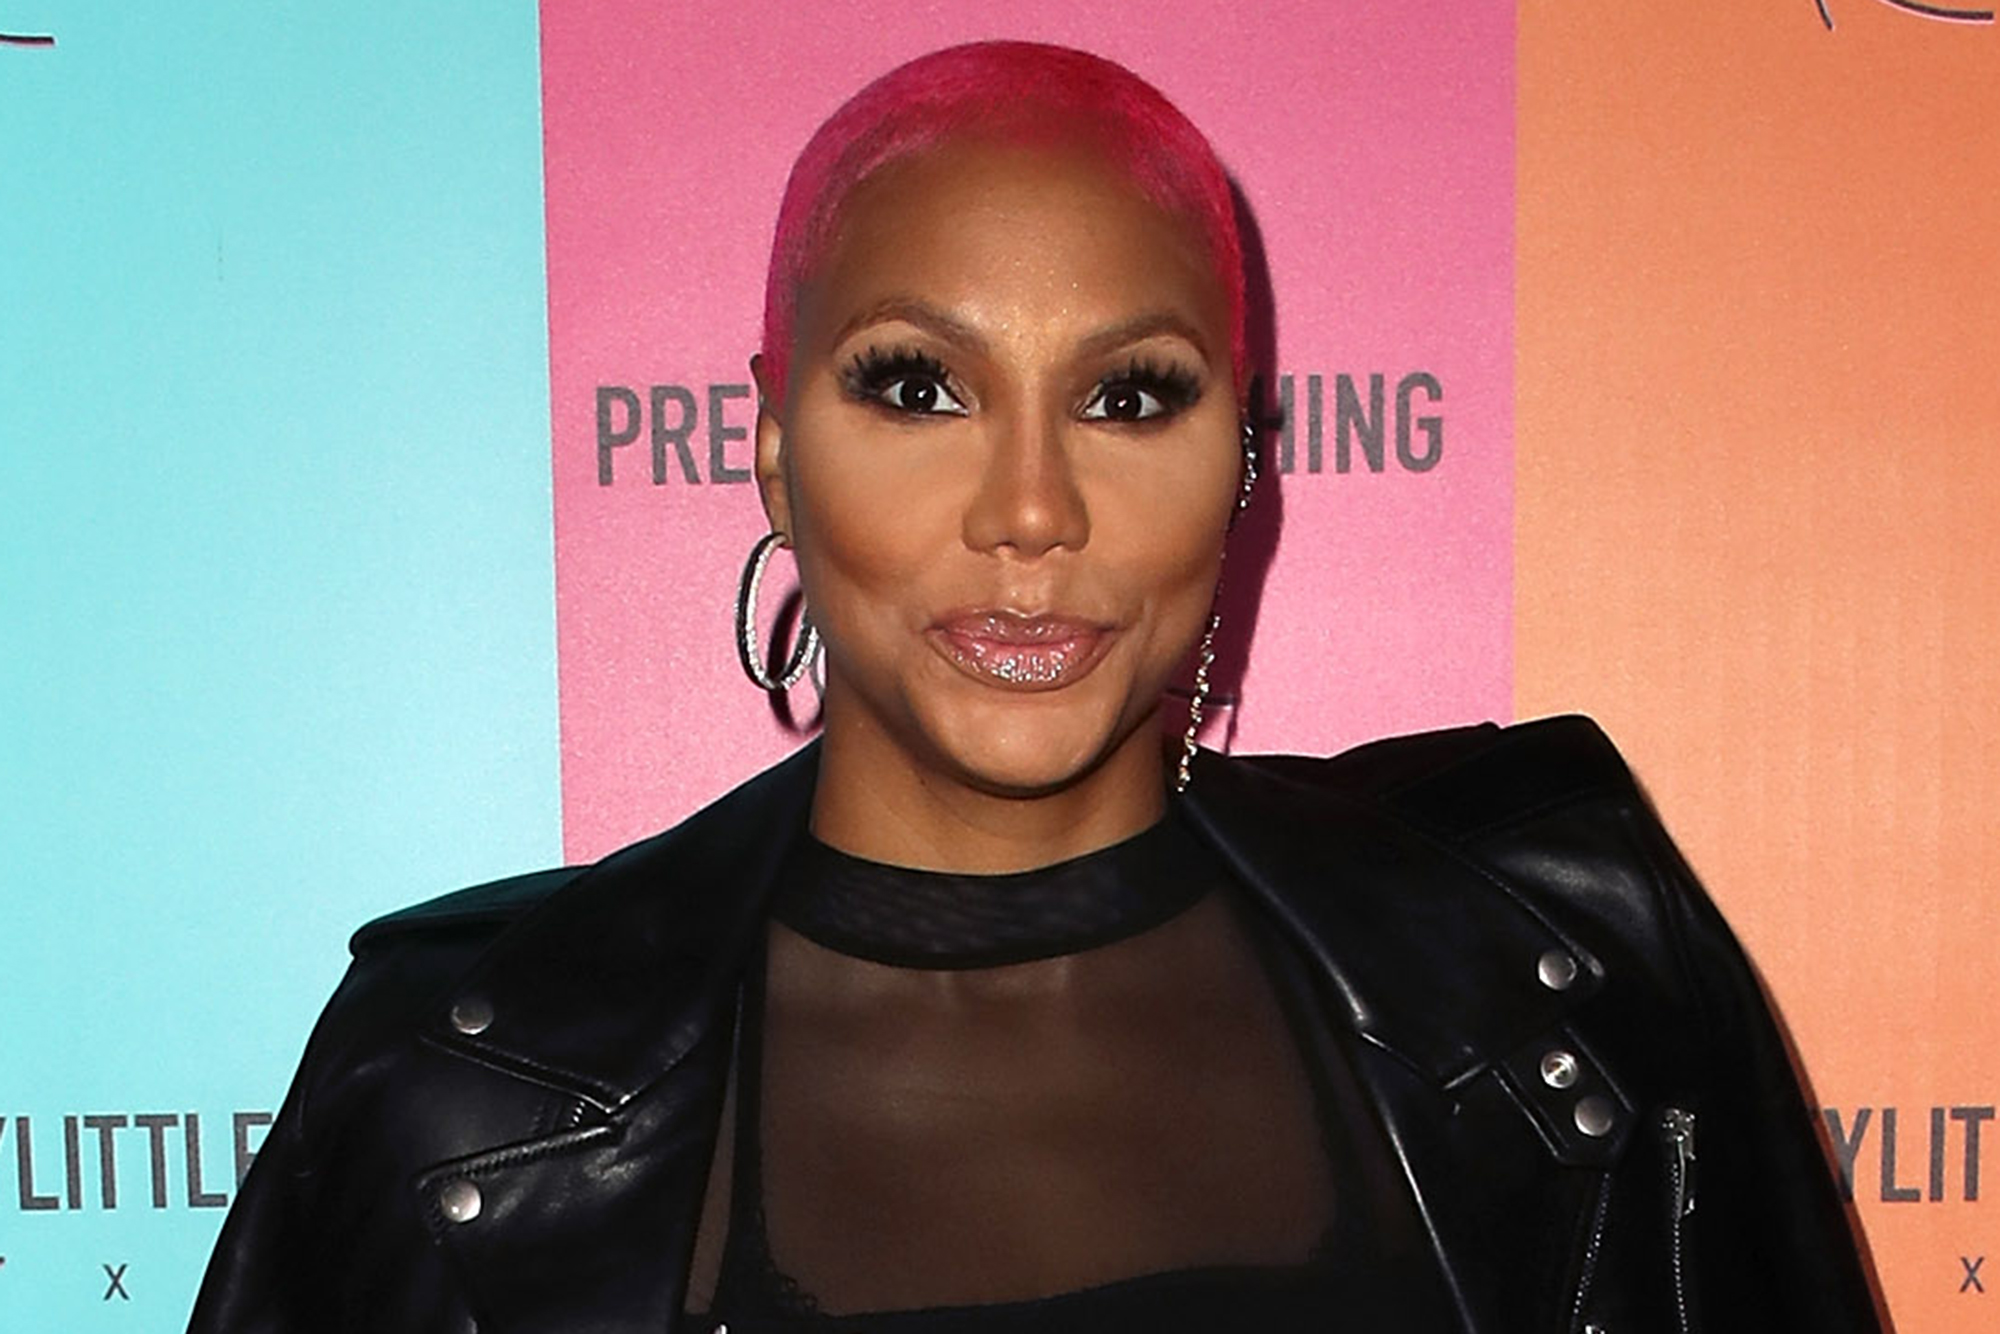 tamar-braxton-shares-an-emotional-post-about-the-times-we-live-in